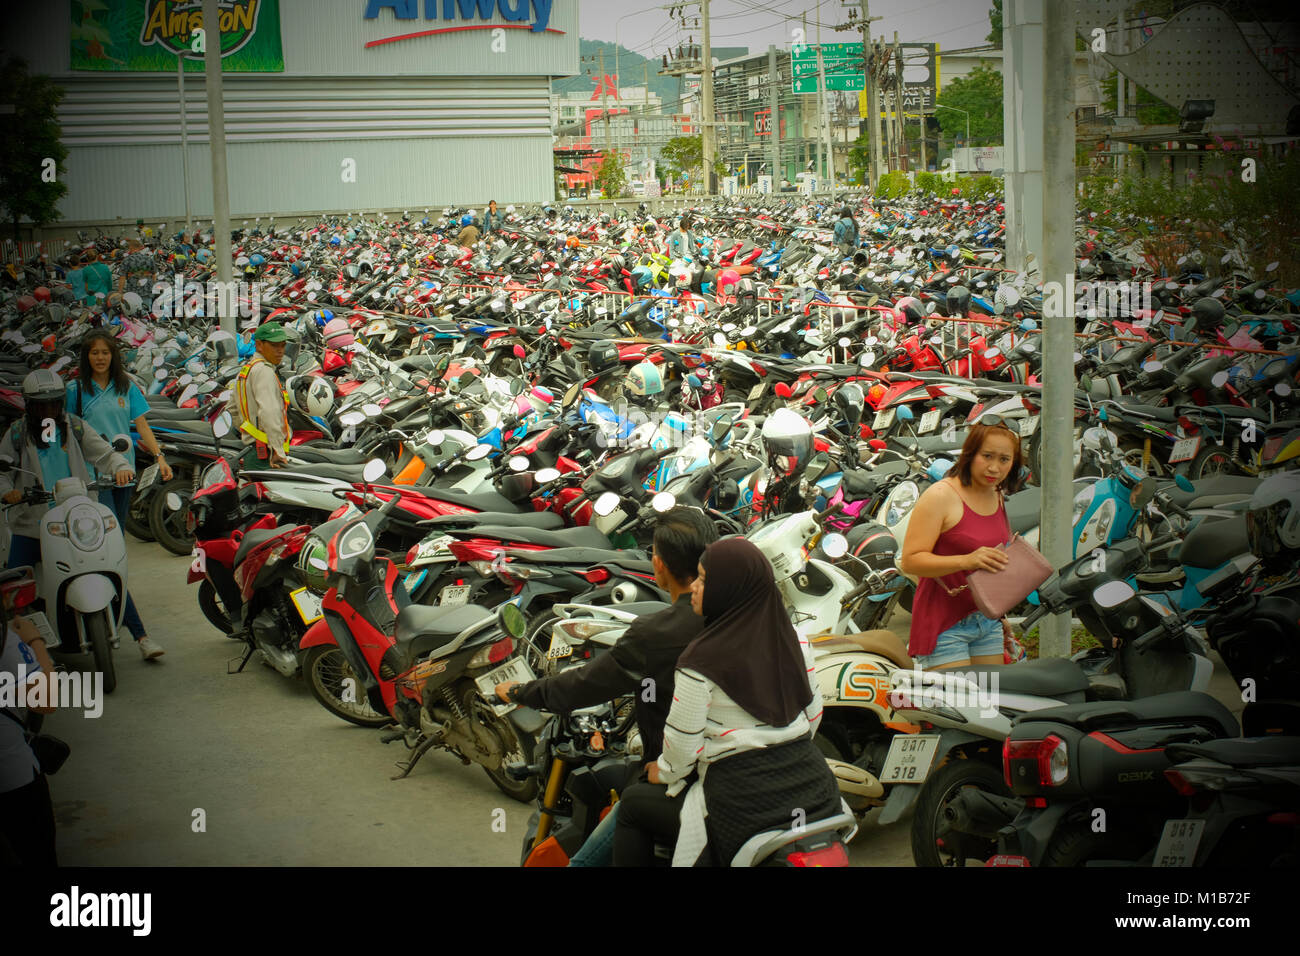 Motorcycles parking near a shopping mall in Phuket, Thailand. - Stock Image